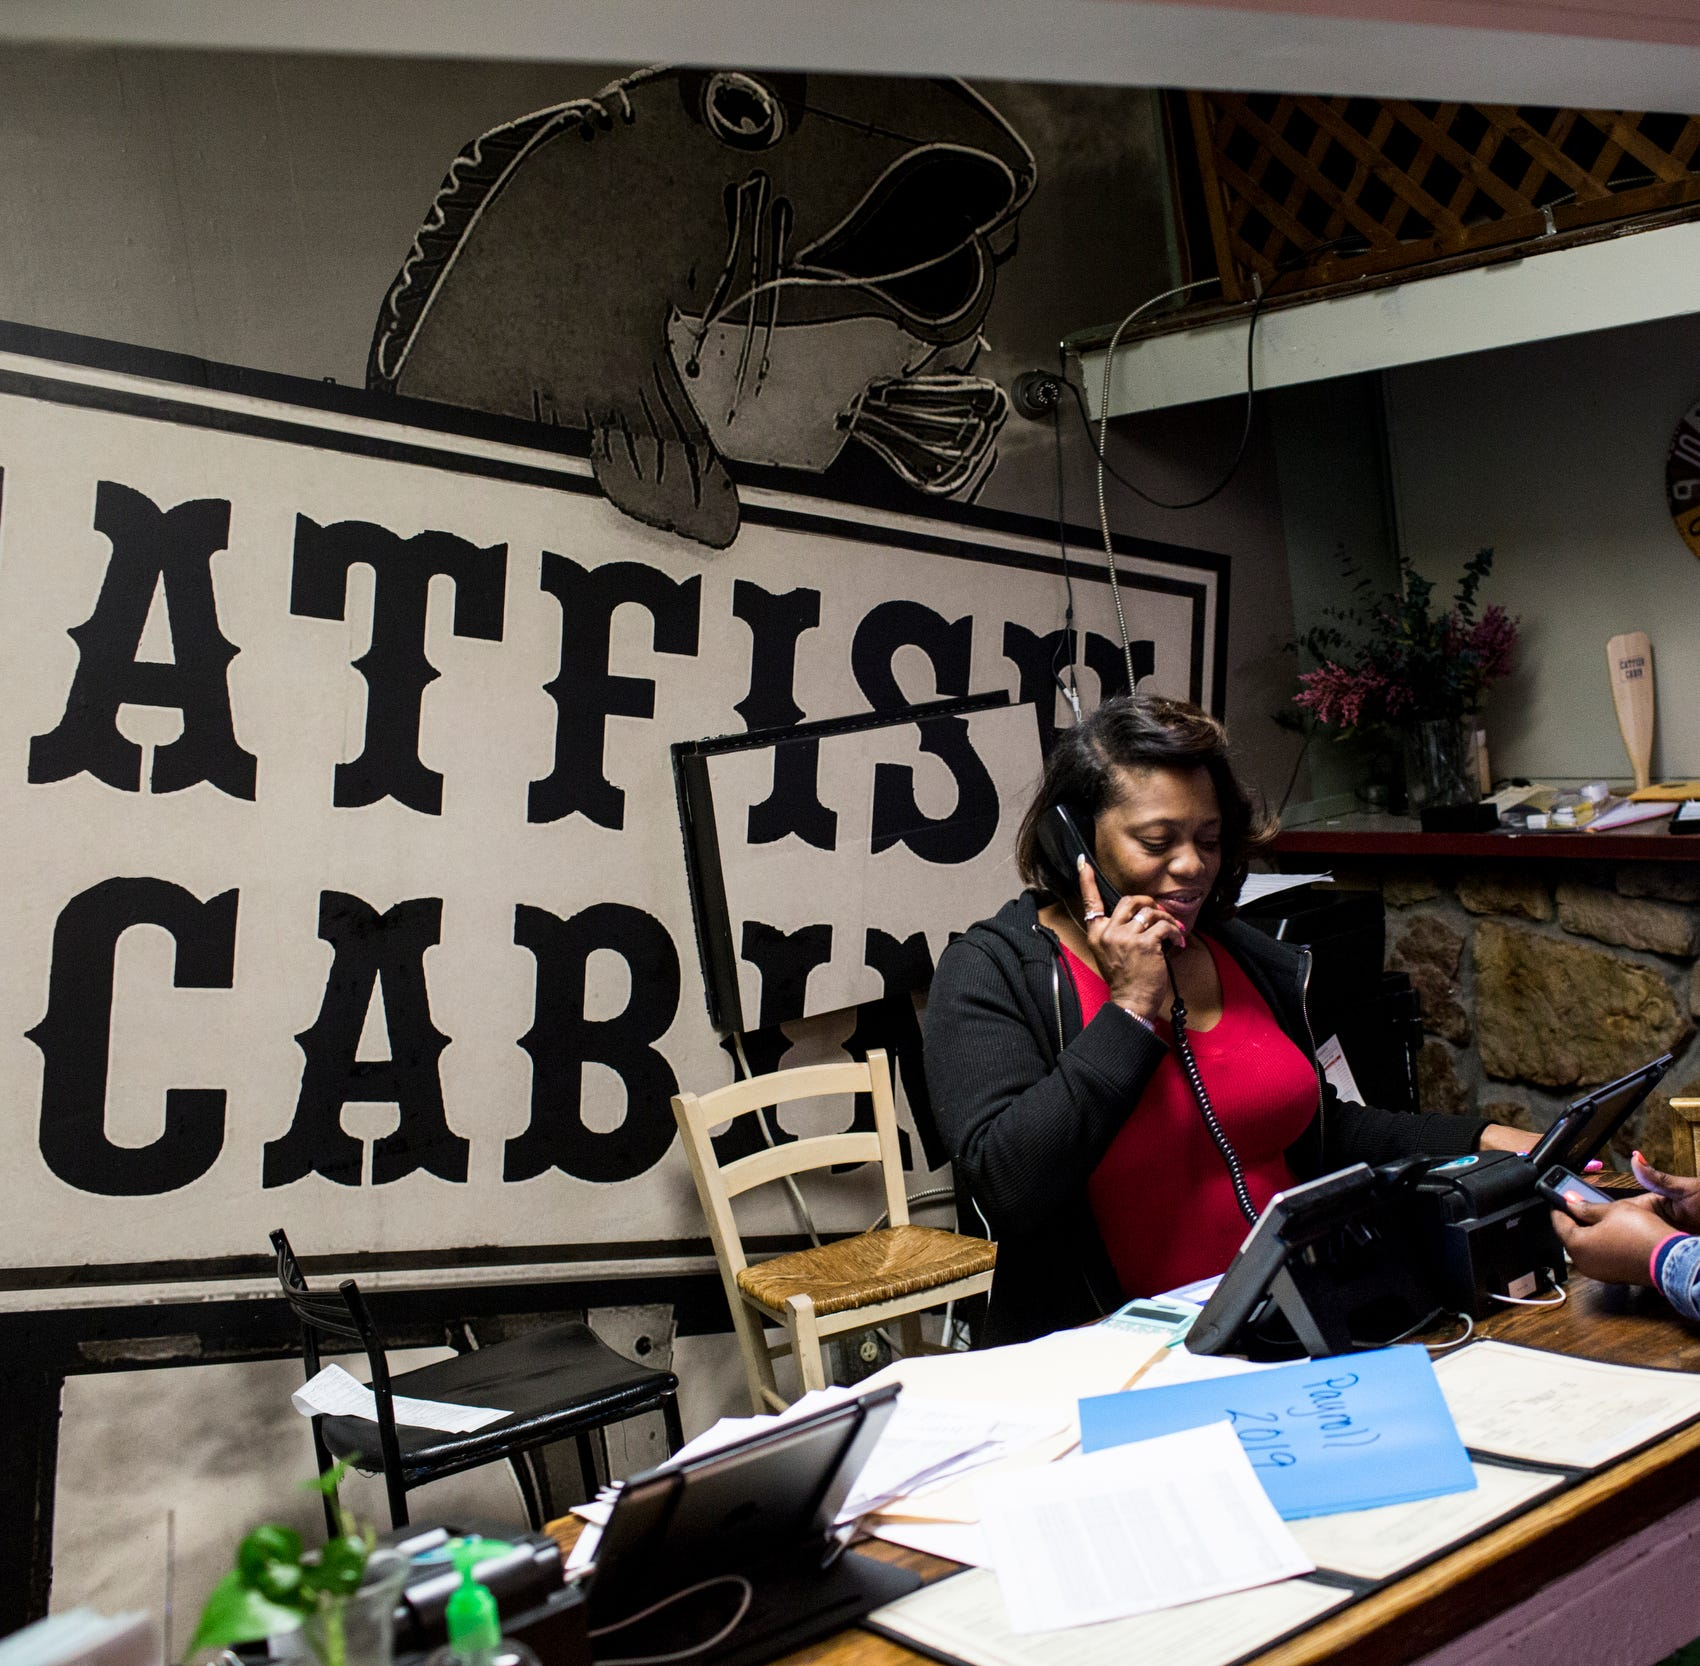 After Gordon Ramsay's '24 Hours to Hell and Back,' Catfish Cabin struggles to attract business